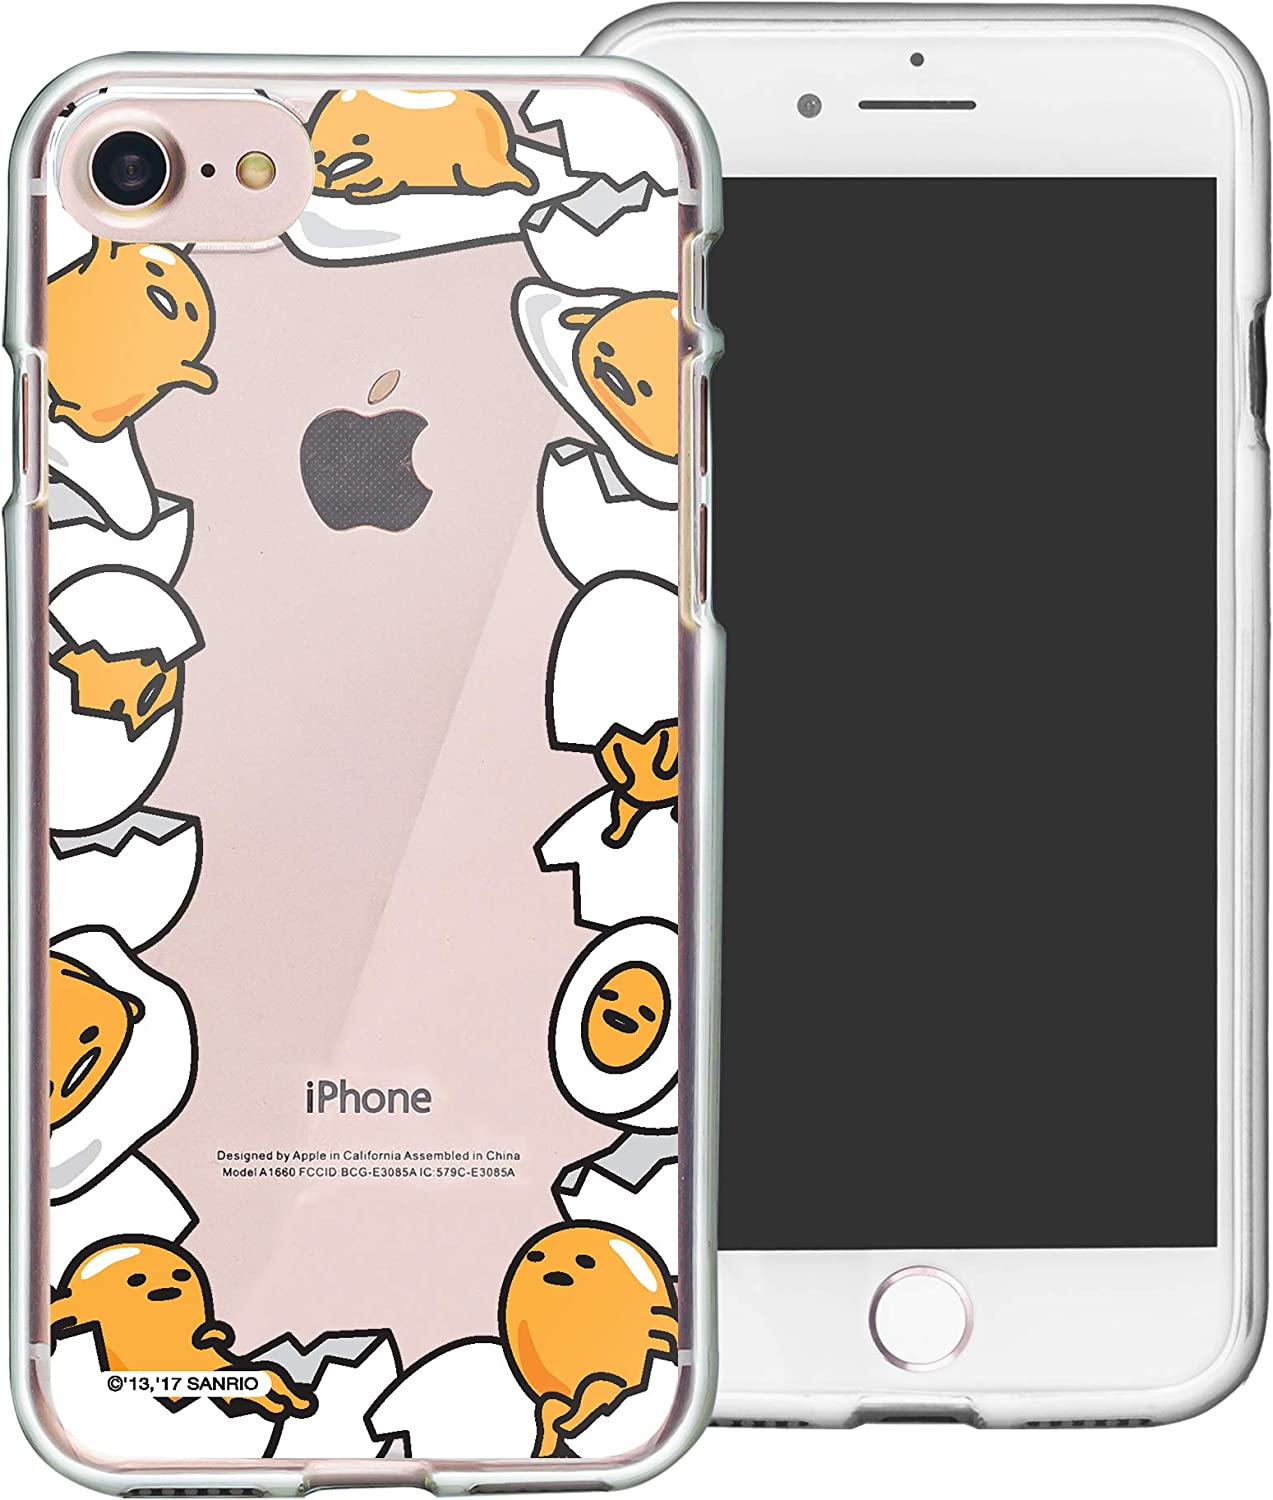 iPhone 5S / iPhone 5 Case Gudetama Cute Border Clear Jelly Cover [ iPhone SE (2016) / 5S / 5 ] Case - Border Gudetama